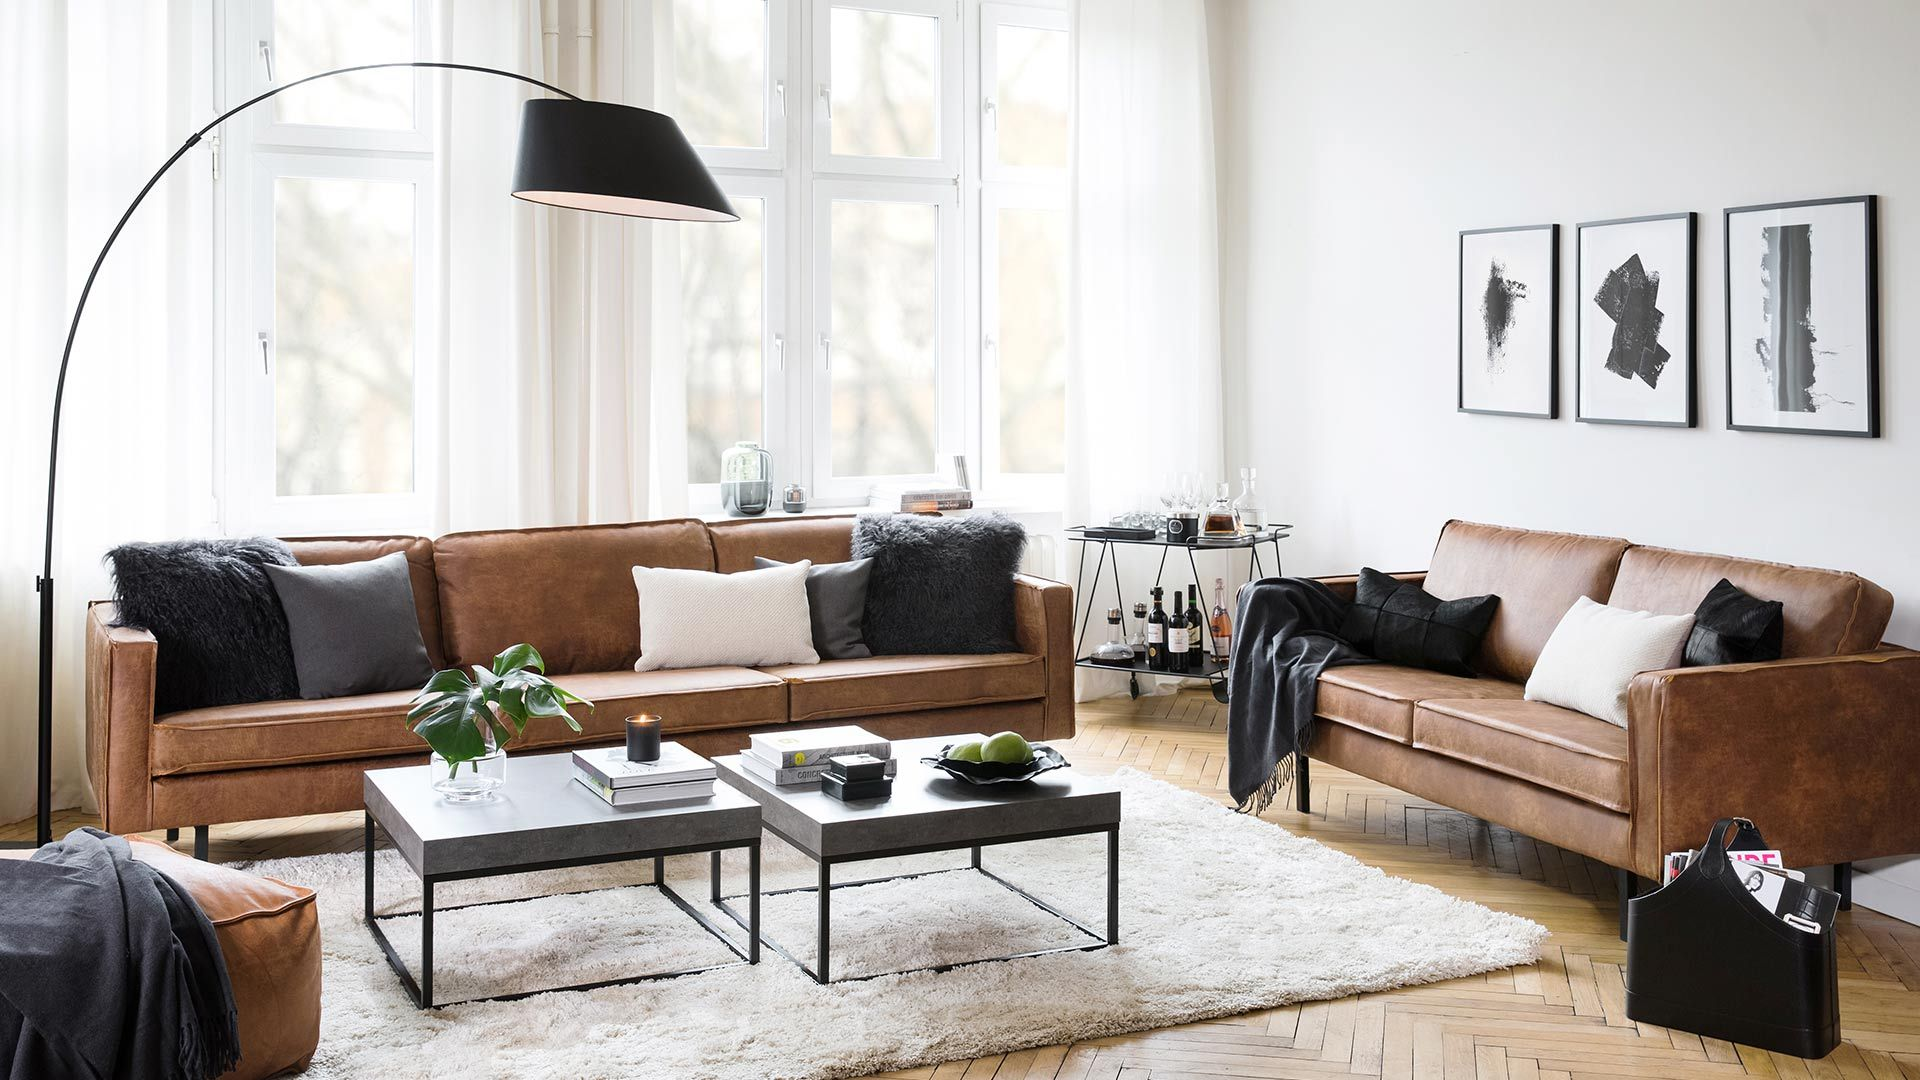 Black & Brown   Wohnzimmer   Pinterest   Brown, Living rooms and Room